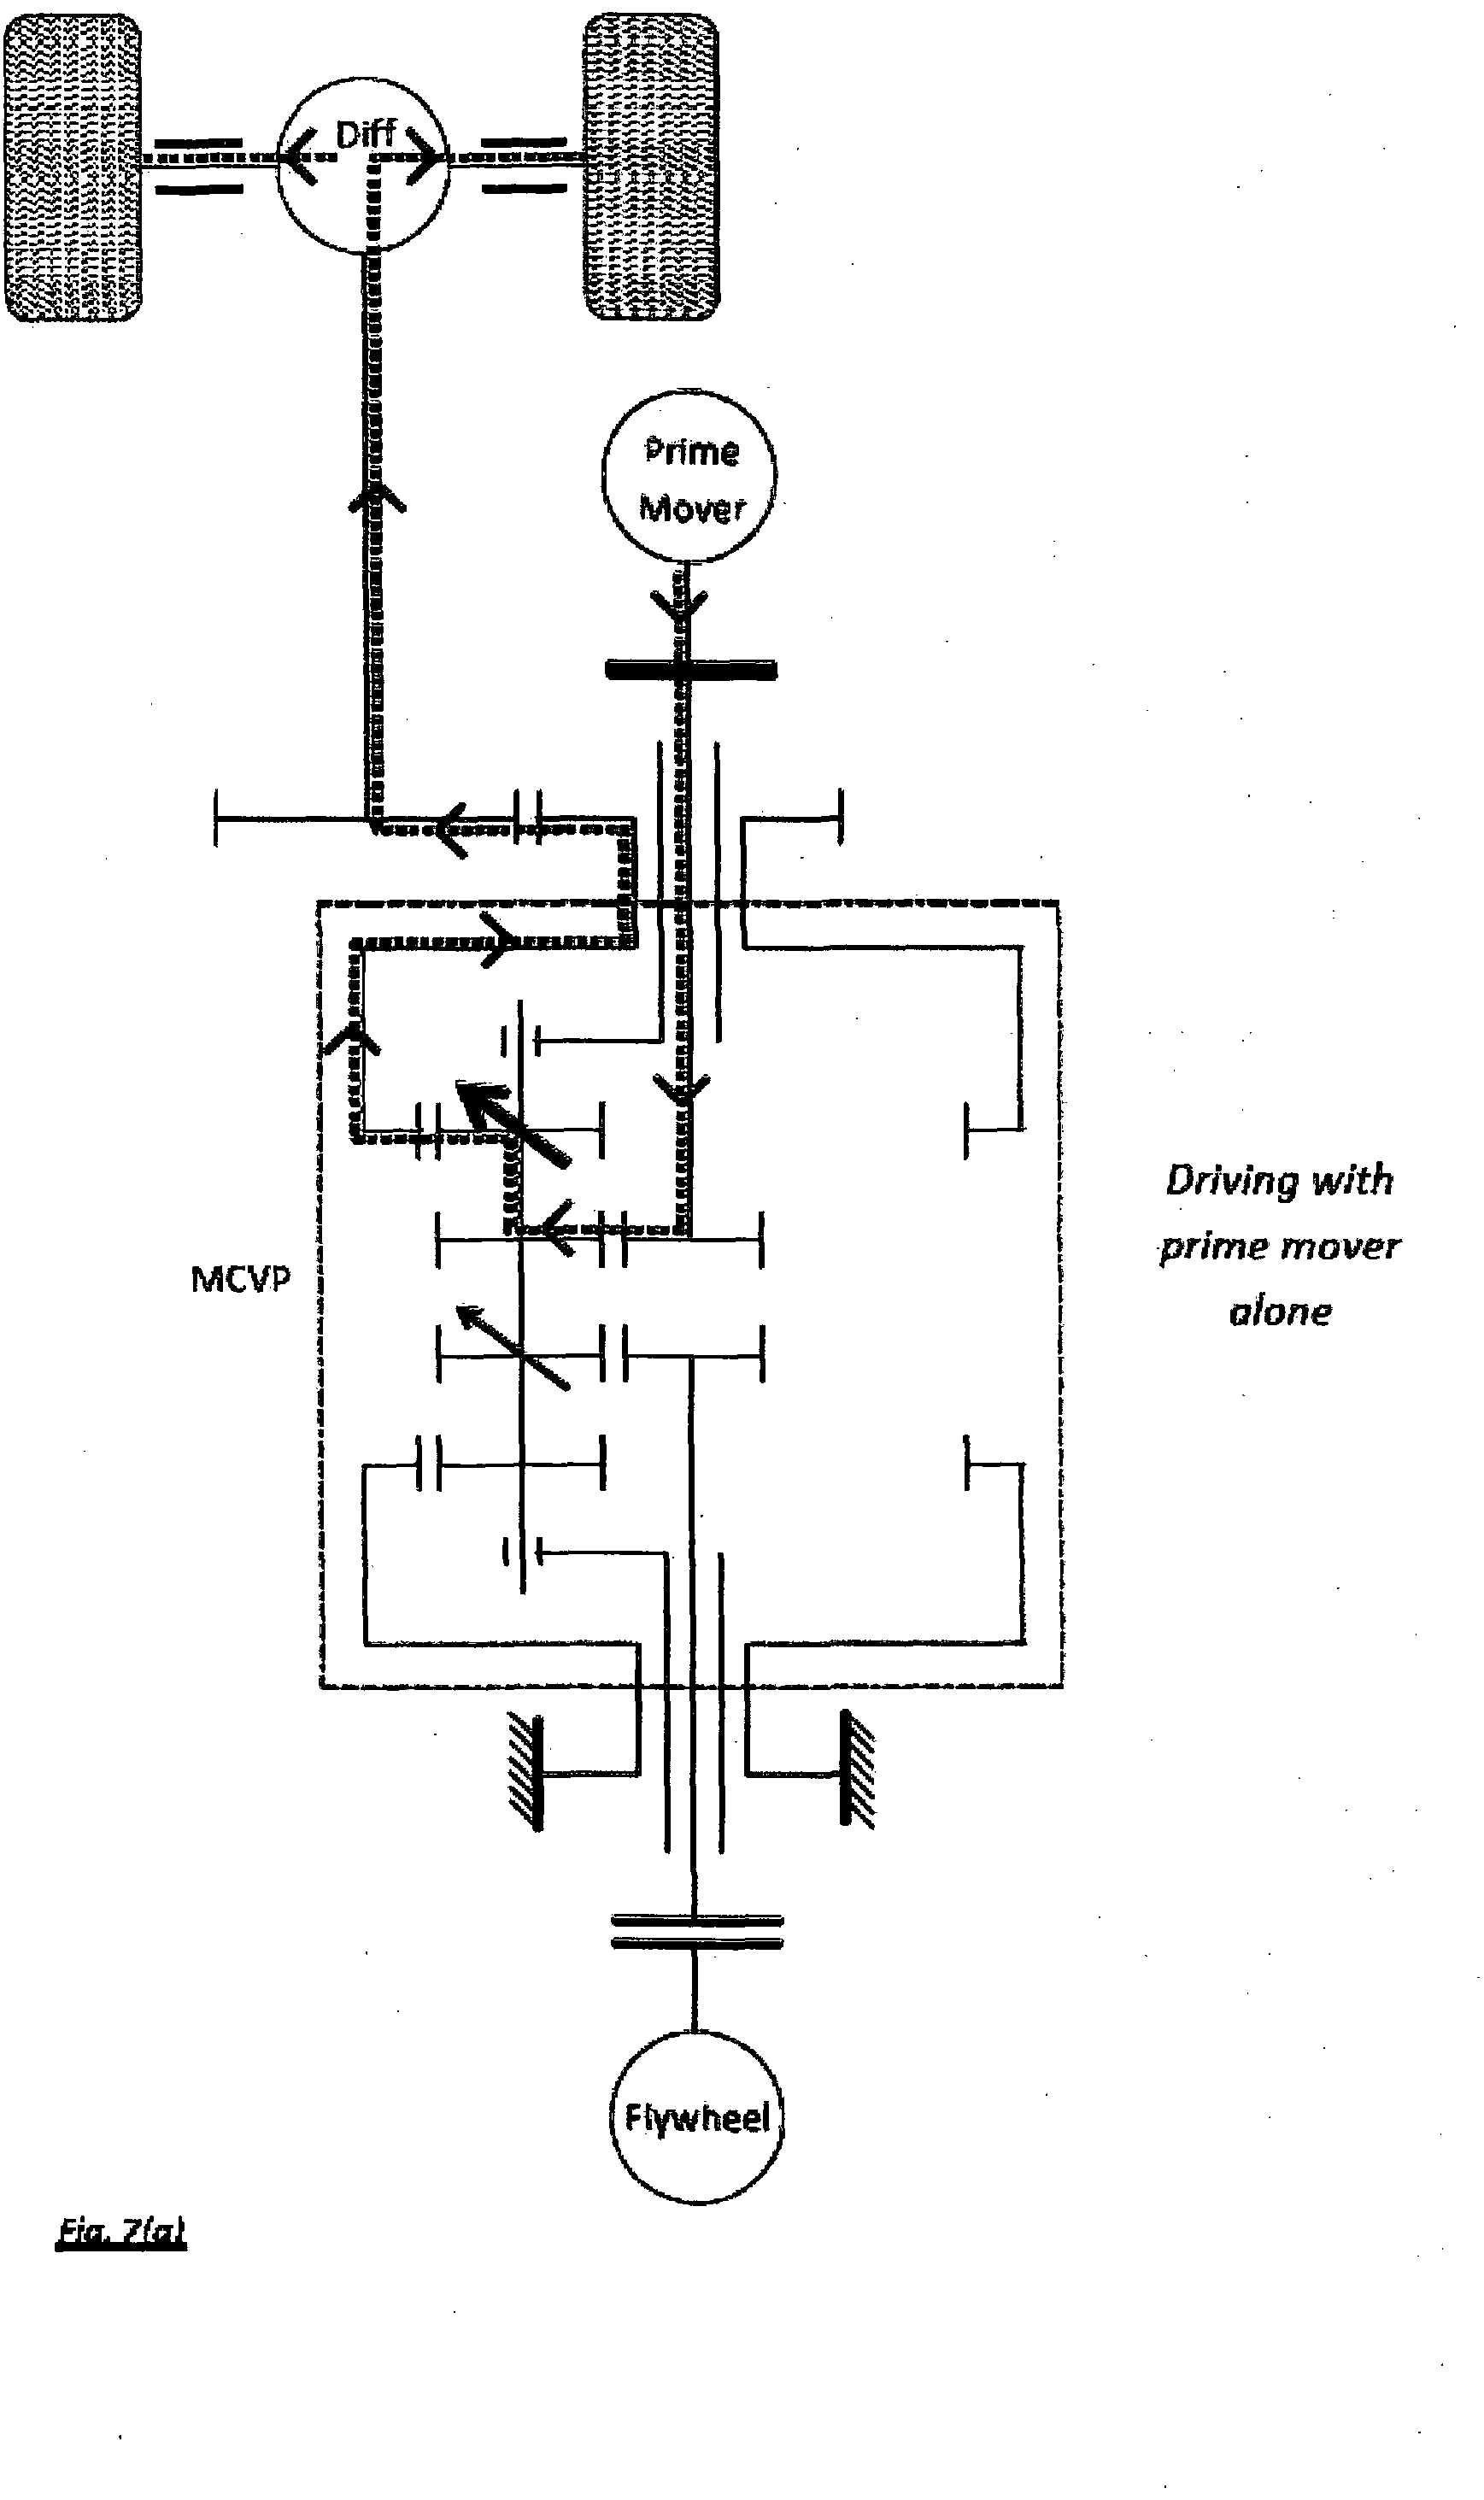 patent wo2014041326a1 - transmission system